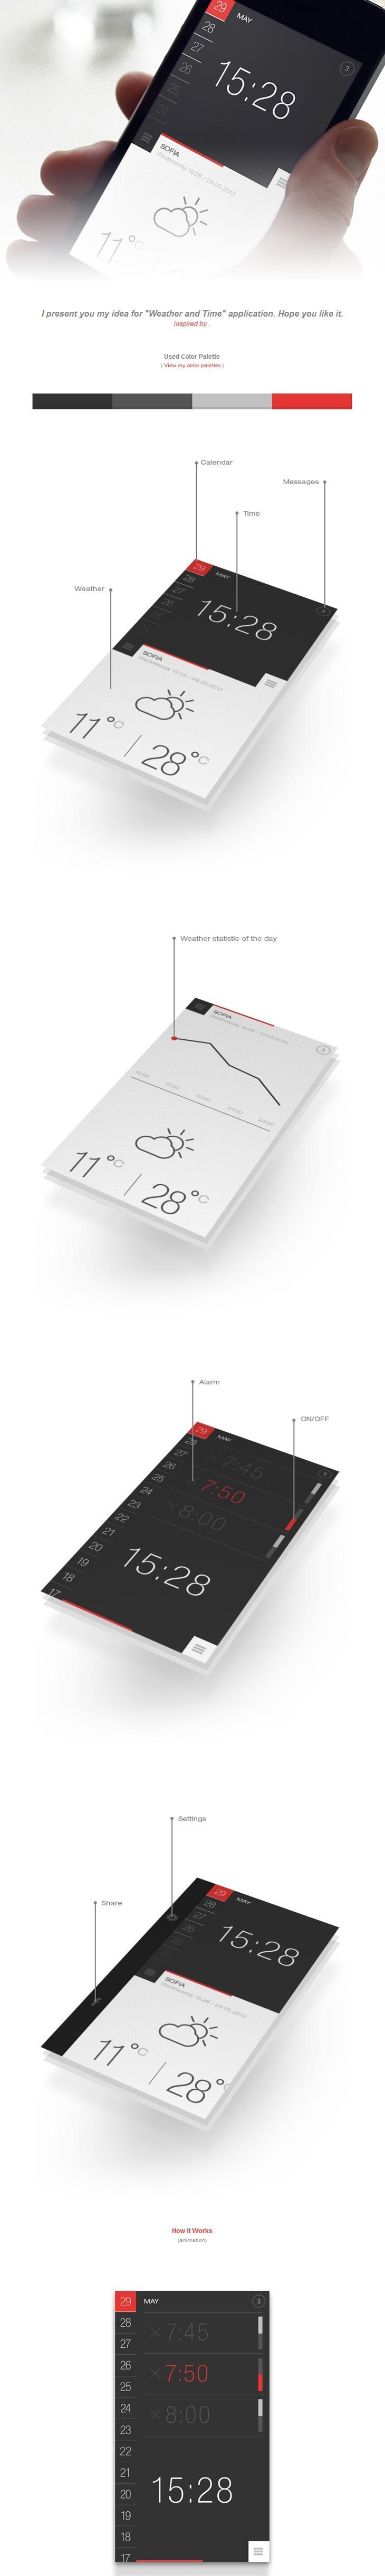 Weather and Time, UX, UI, flat colors, minimalism